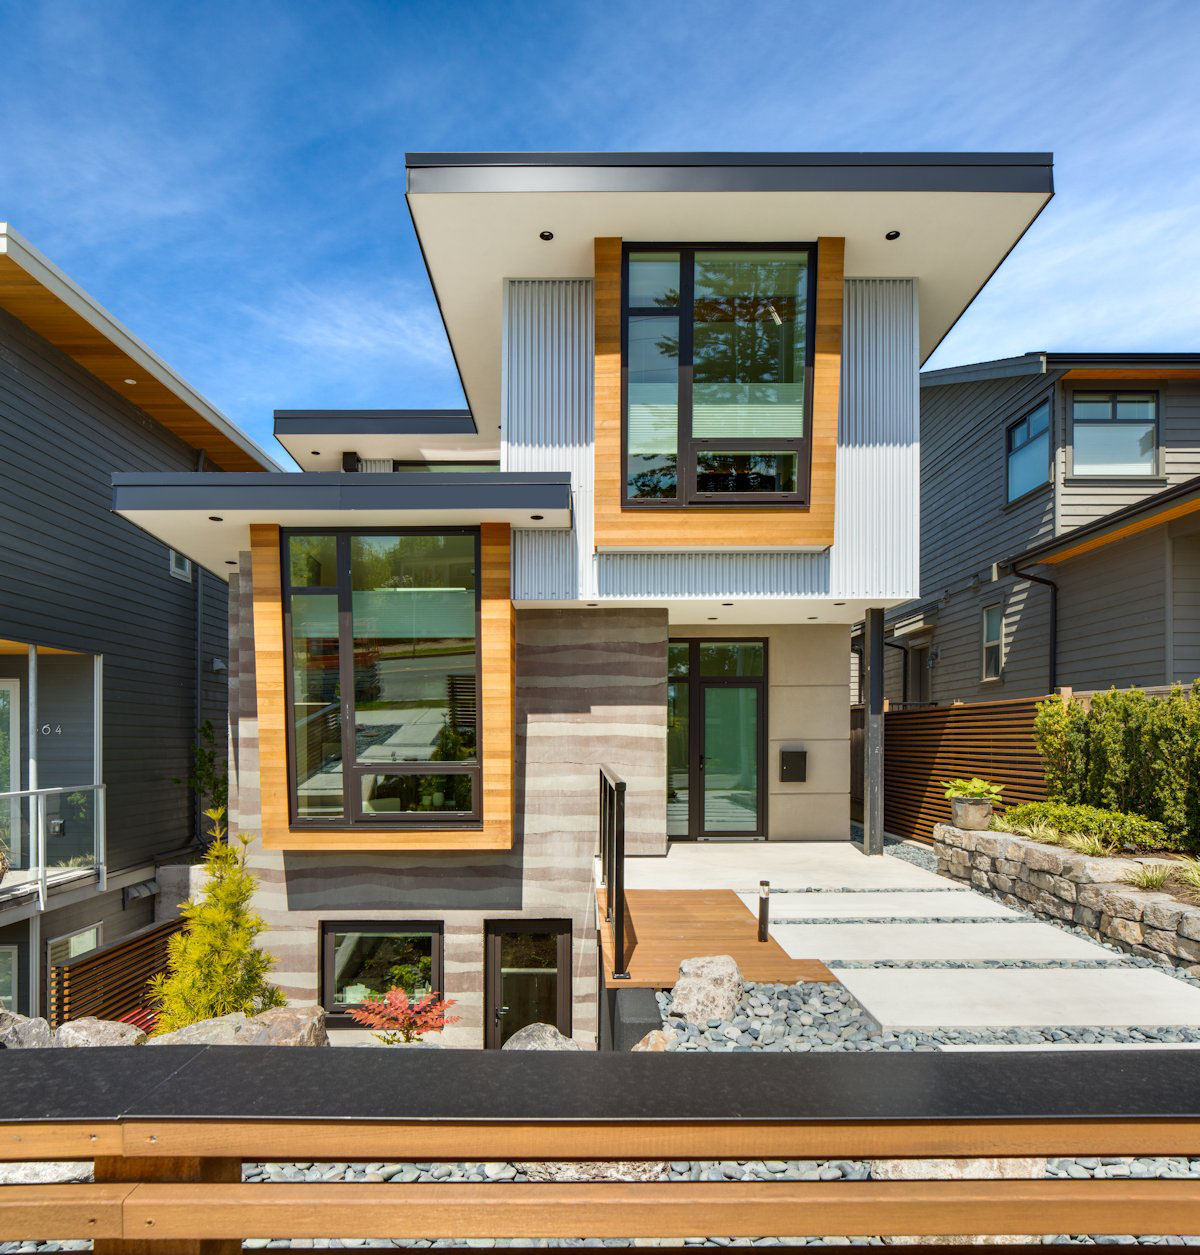 Green Home Design Ideas: Award-Winning High-Class Ultra Green Home Design In Canada